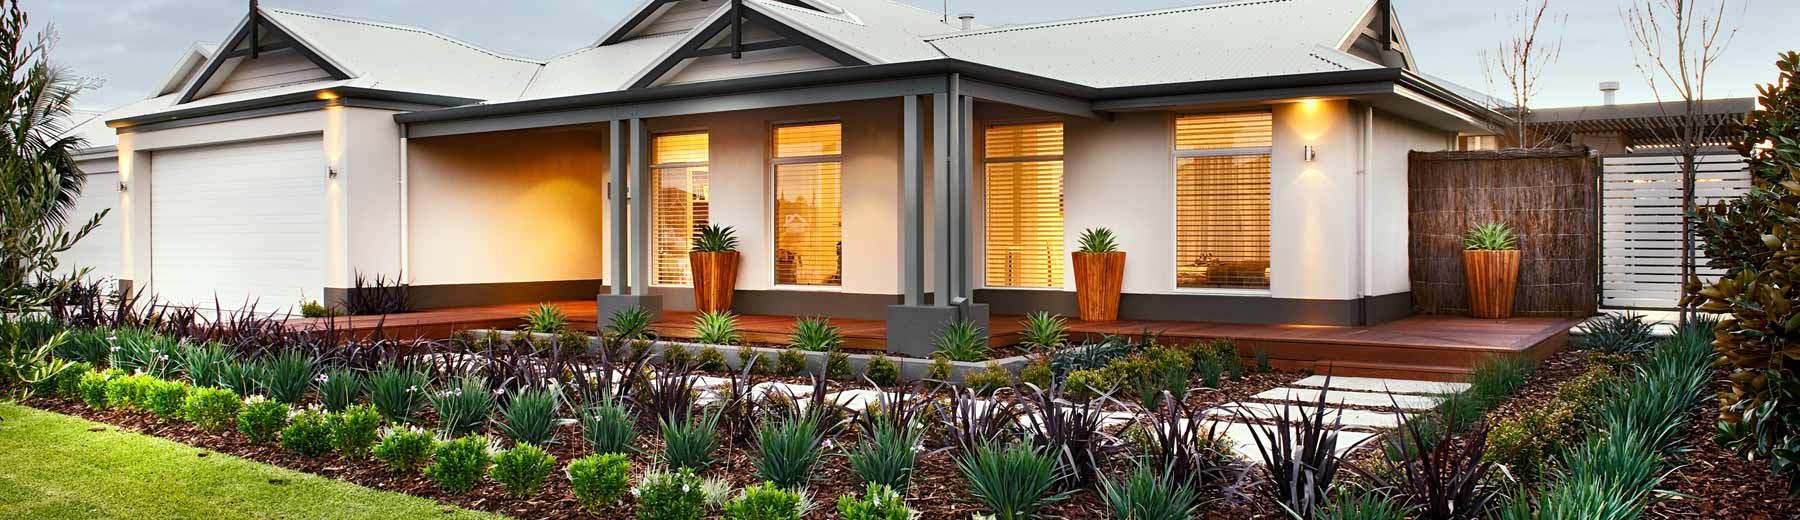 Landscape gardening jobs perth wa for Garden design ideas perth wa